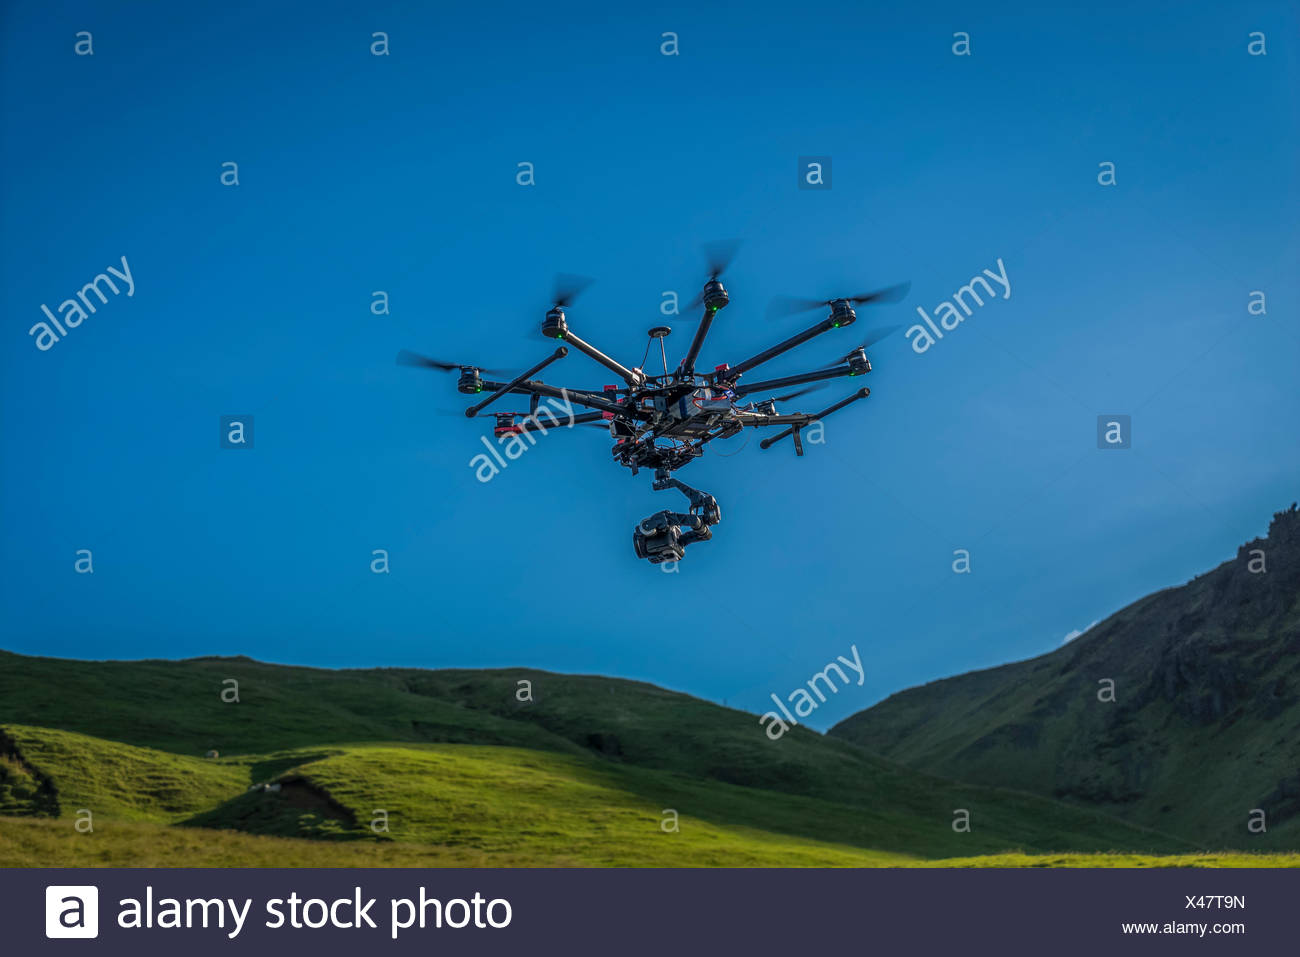 DJI S1000, Radio Controlled Drone flying with a camera by Skogafoss Waterfalls, Iceland - Stock Image